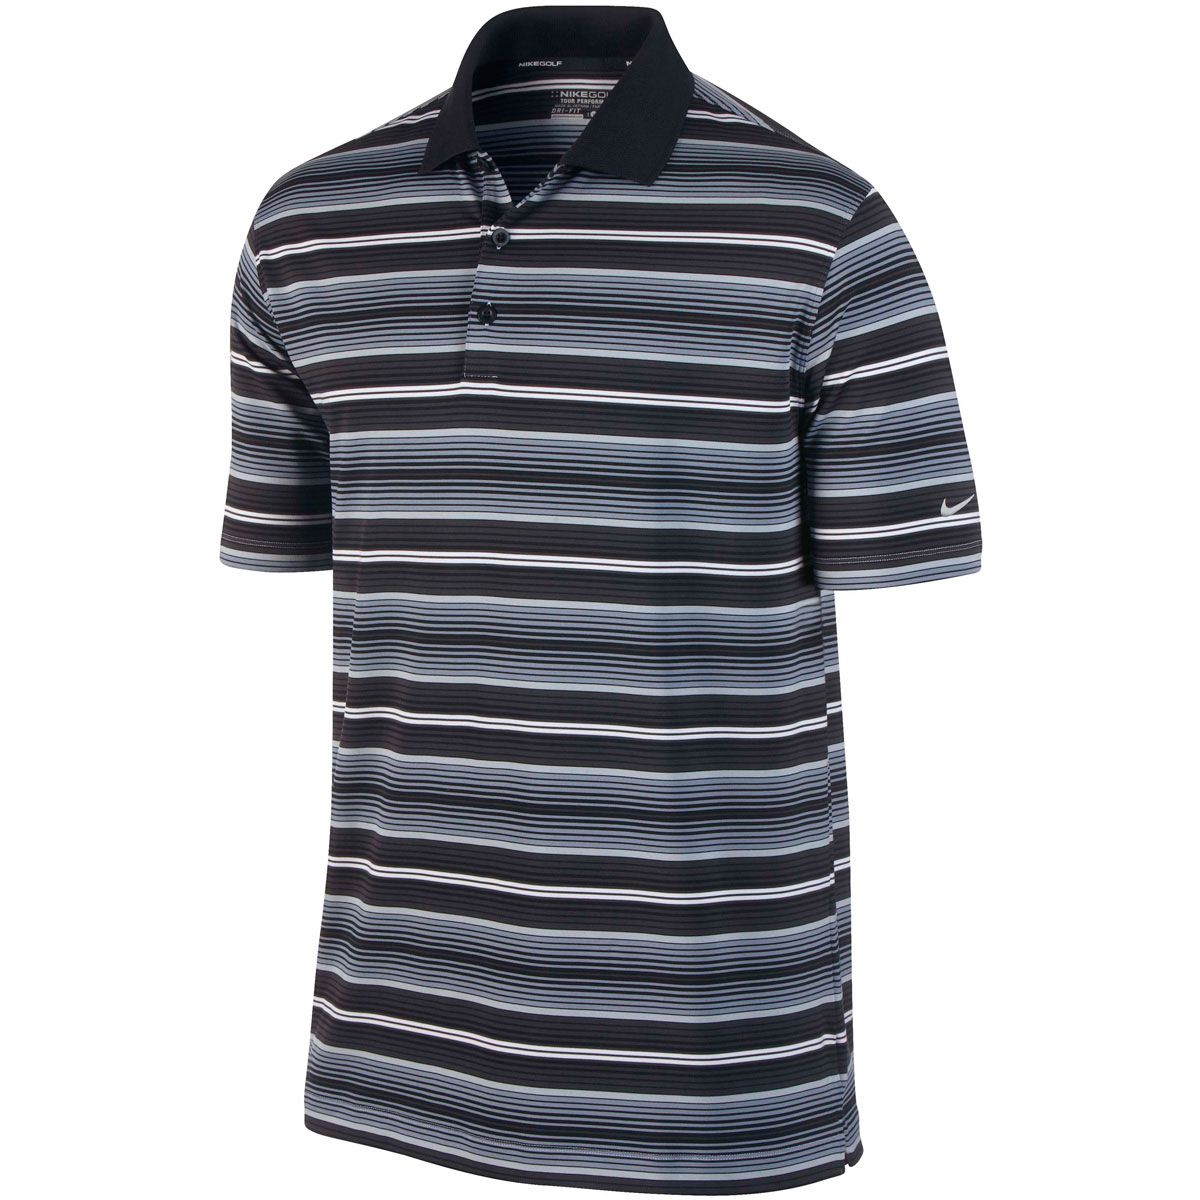 Nike Golf 2014 Mens Dri Fit Key Stretch UV Stripe Golf ...